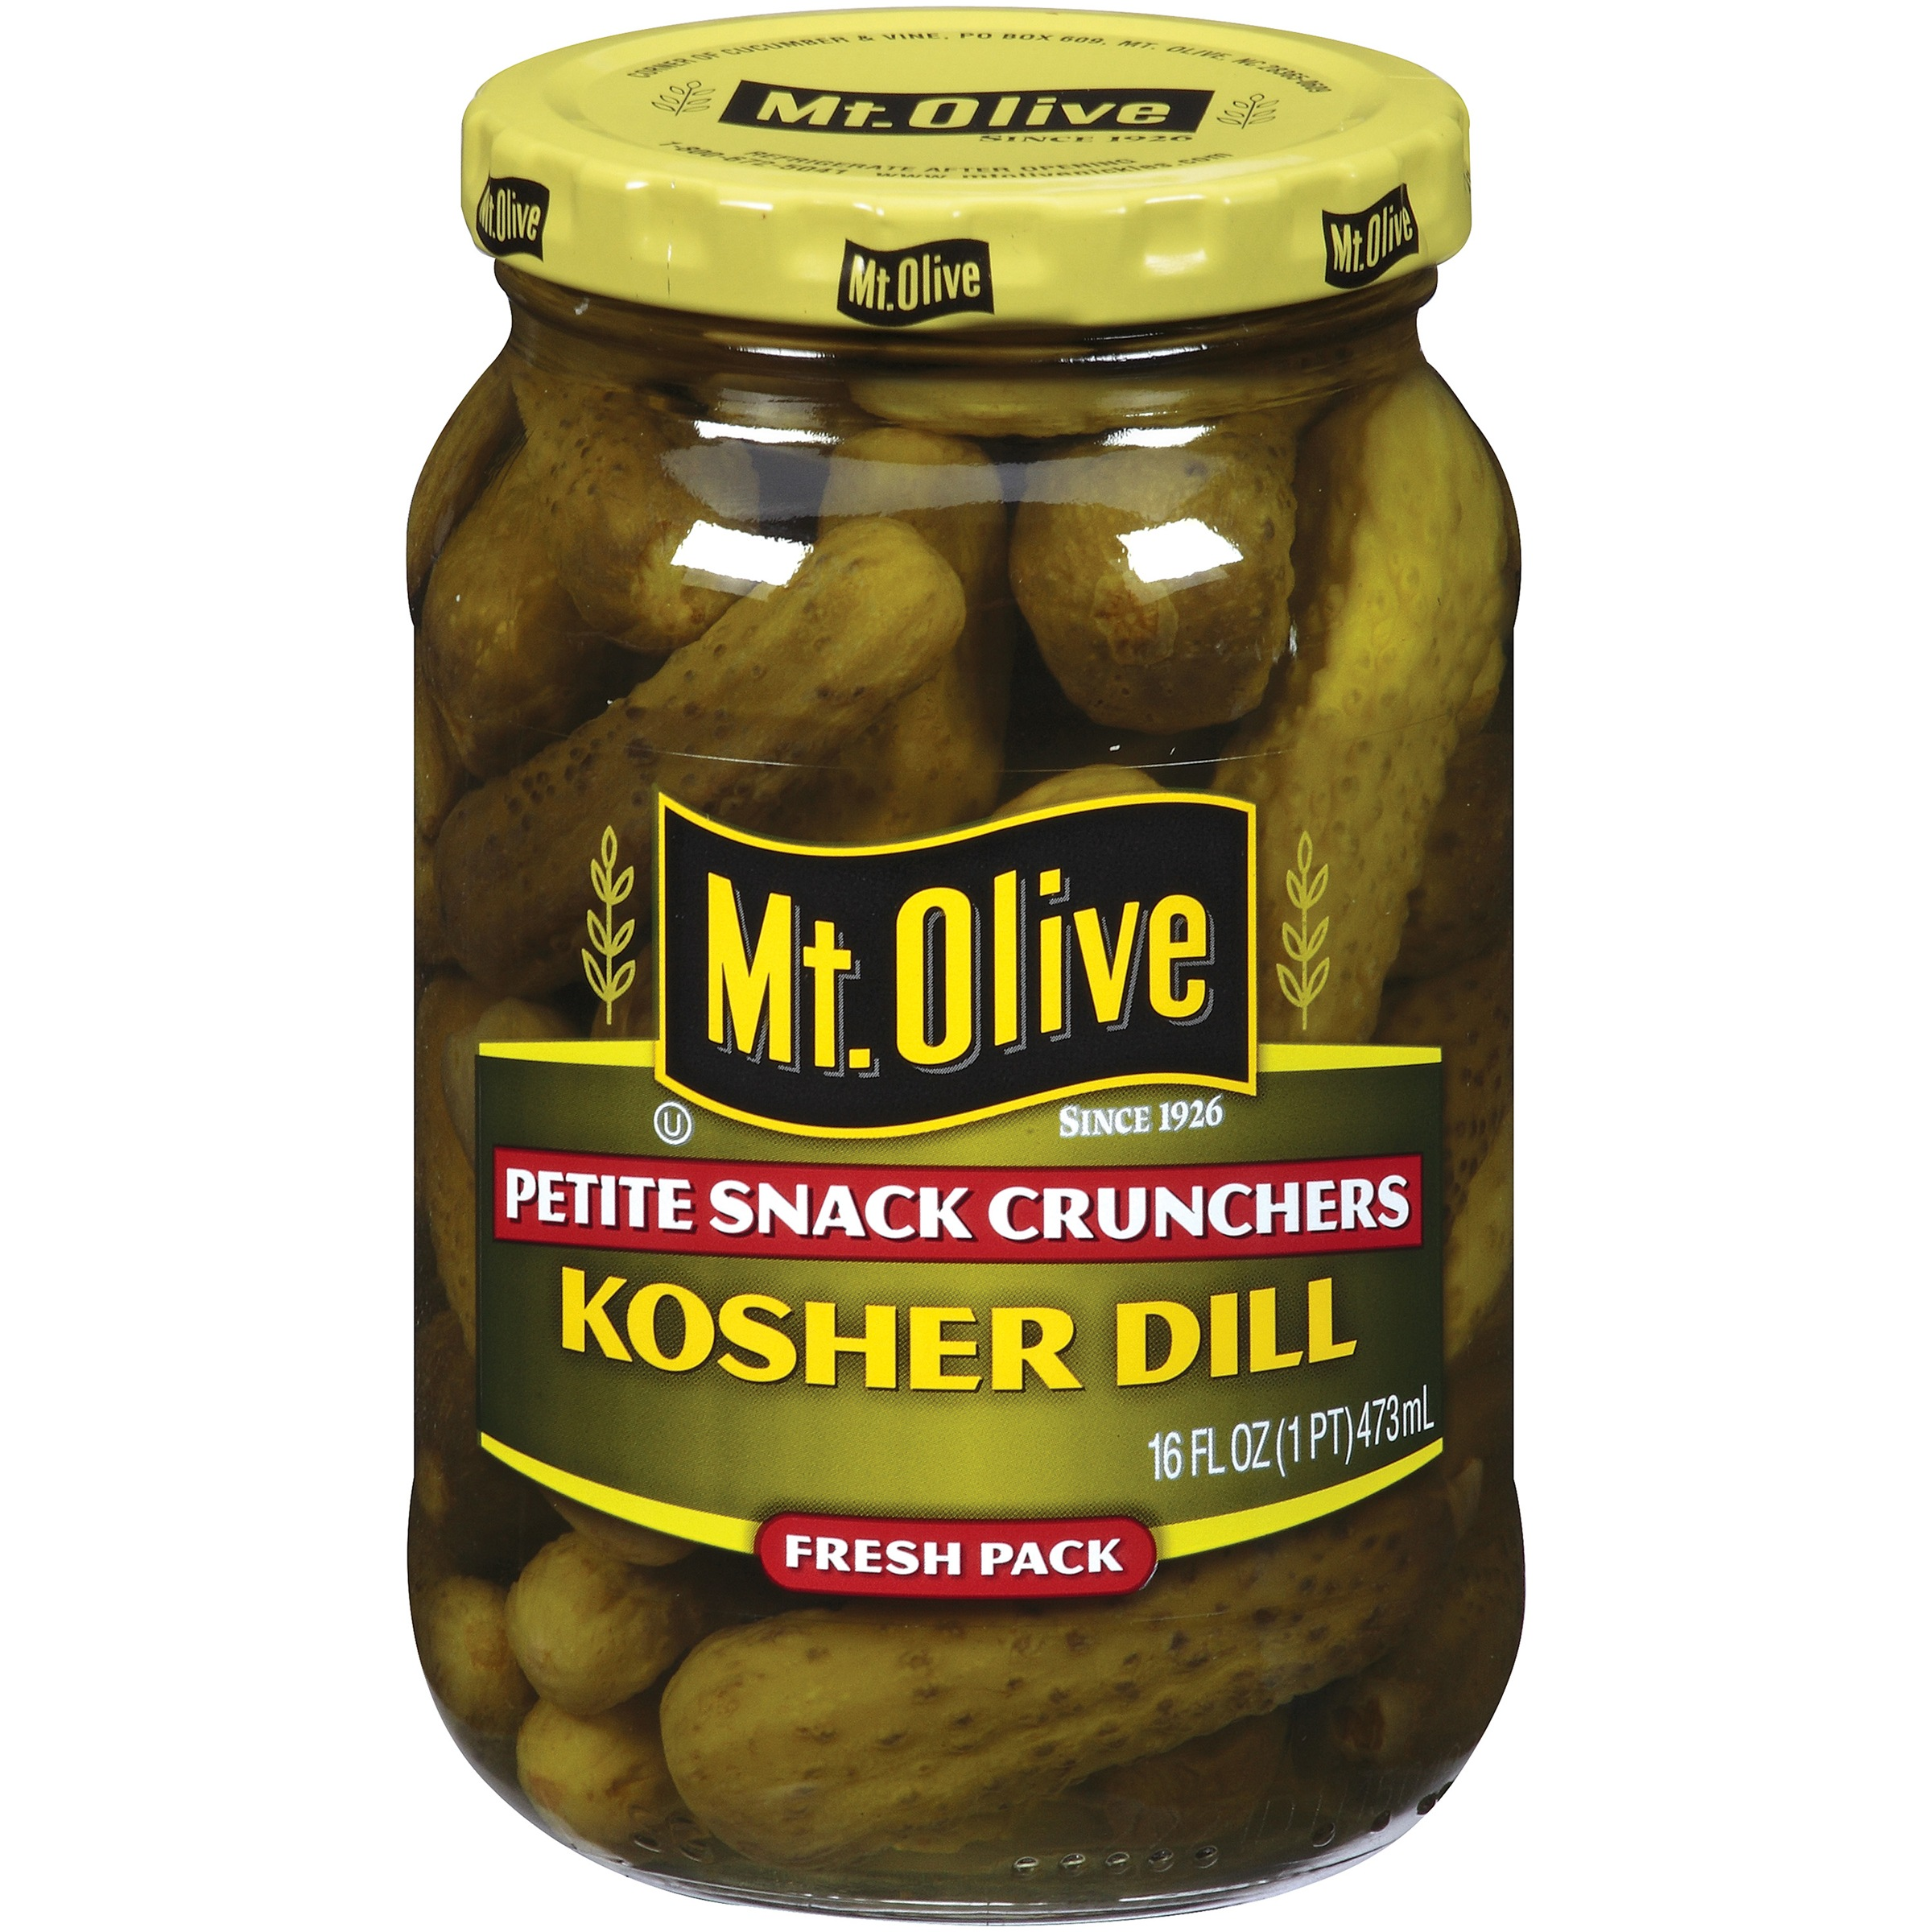 Mt. Olive Kosher Dill Petite Snack Crunchers 16 fl. oz. Jar